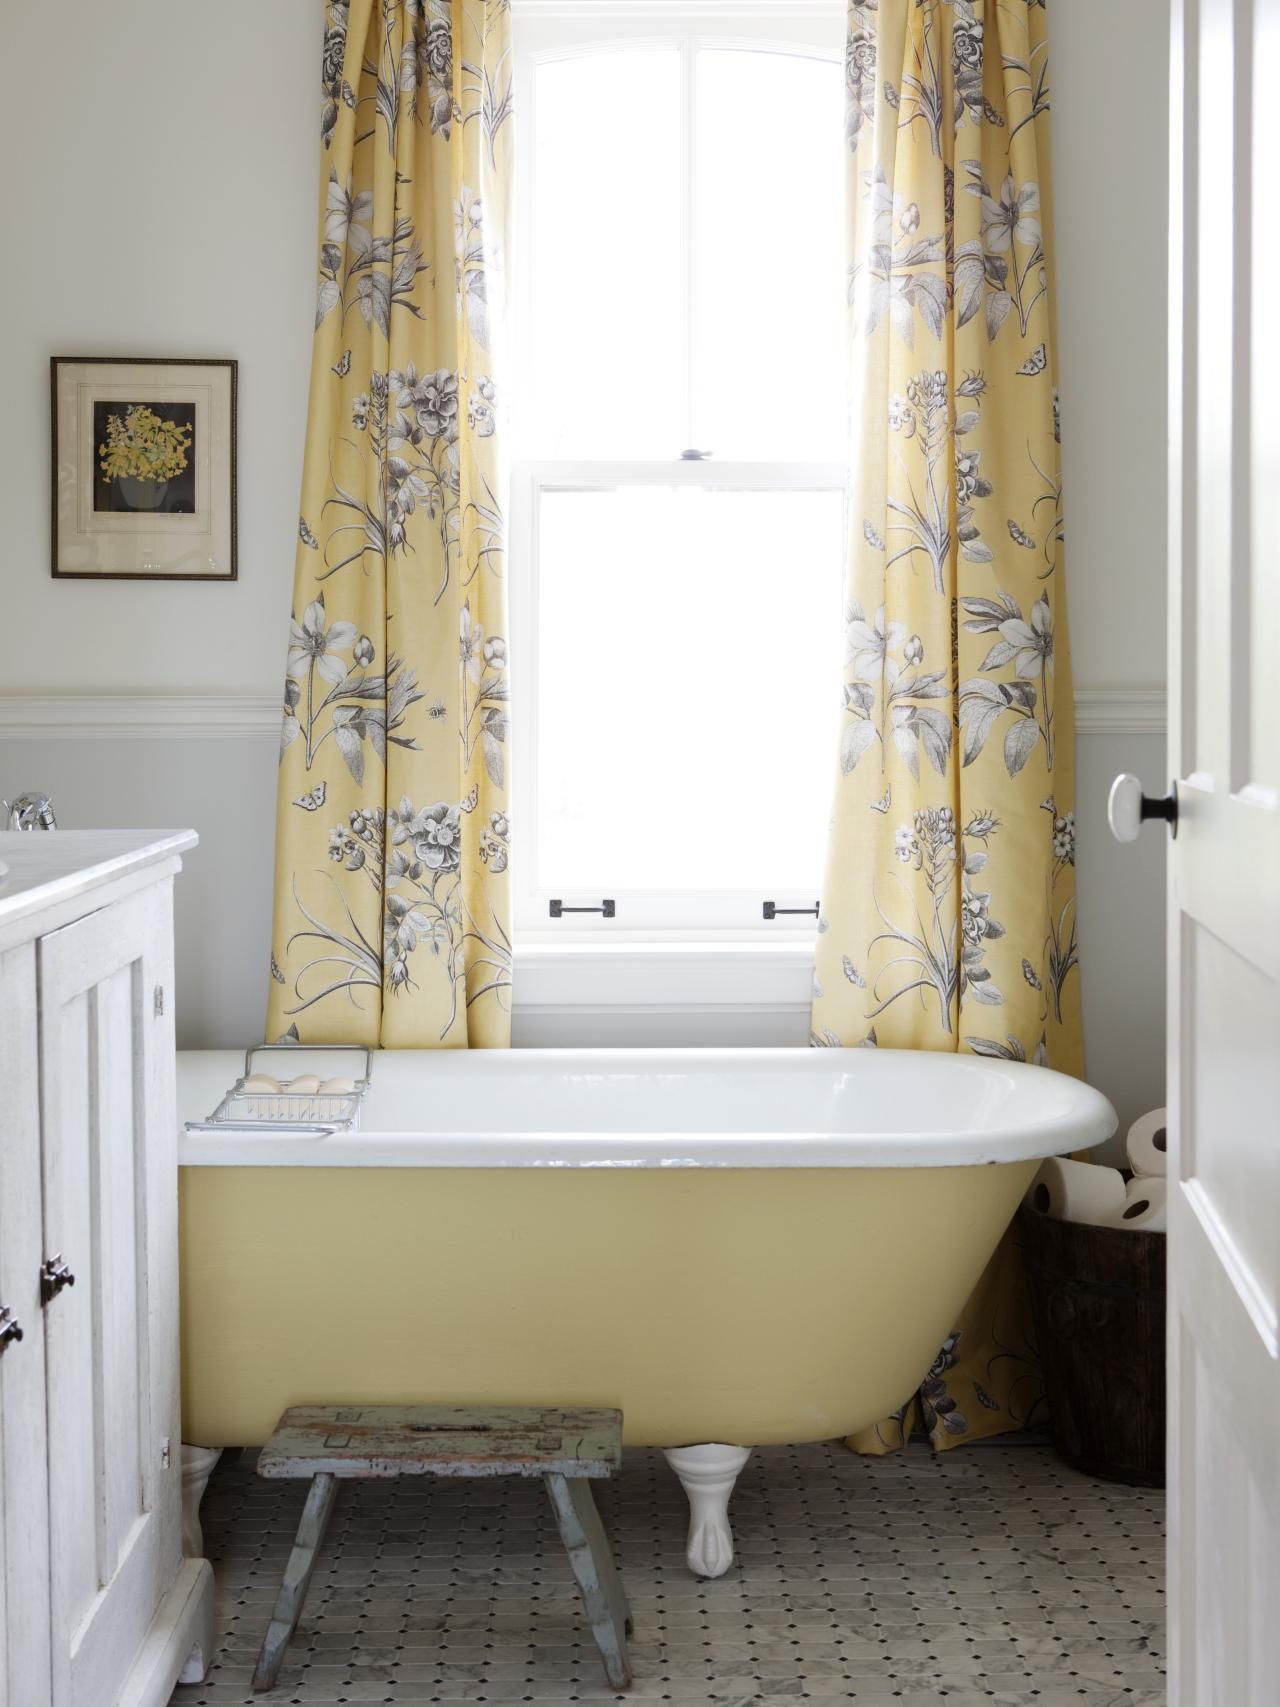 Shabby Chic Bathroom Designs: Pictures & Ideas From HGTV | HGTV